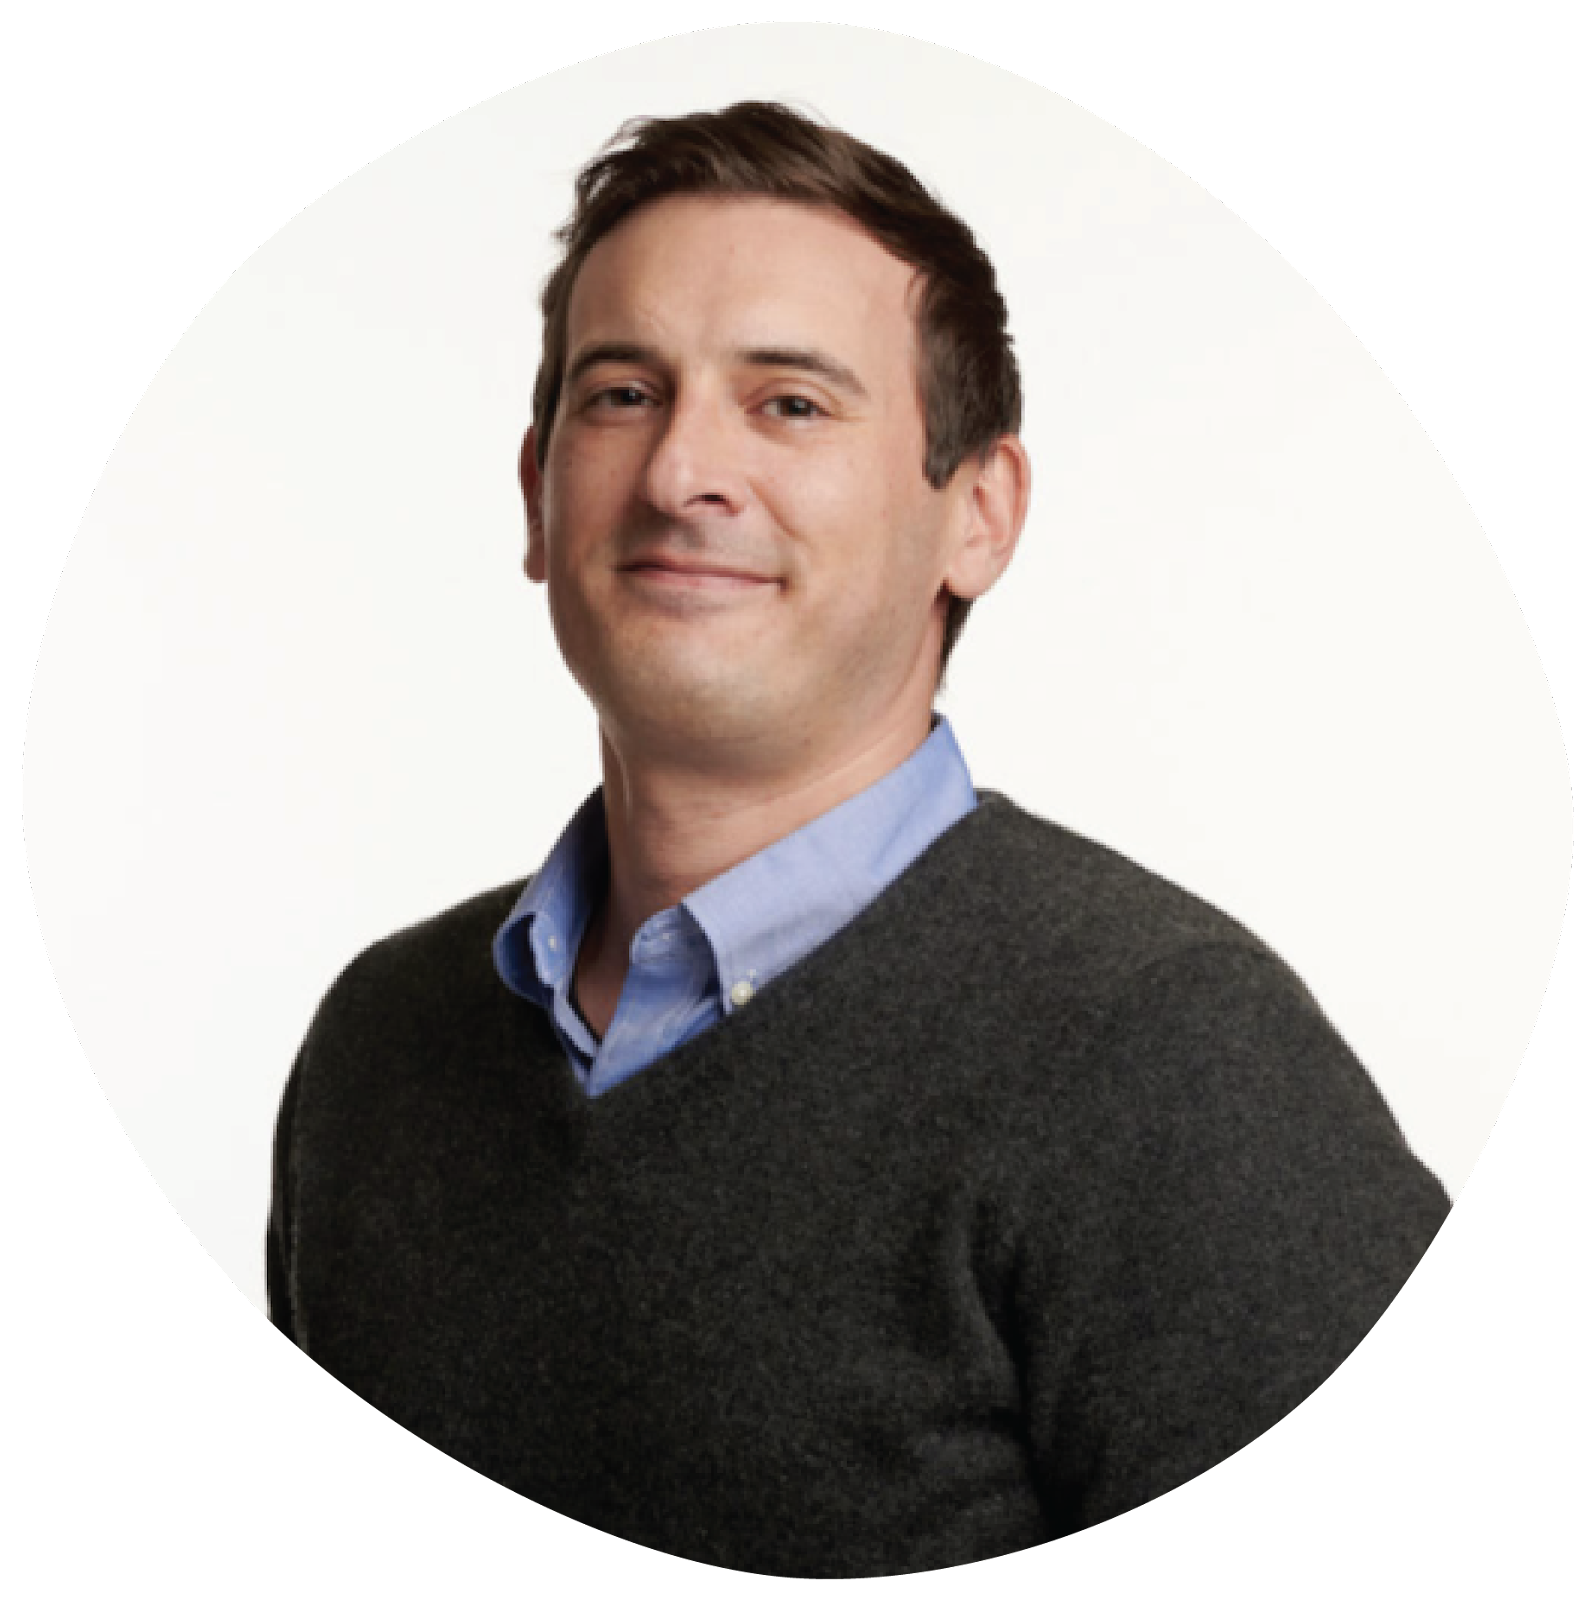 Ben Karetny, Director of Programmatic Sales, Healthline